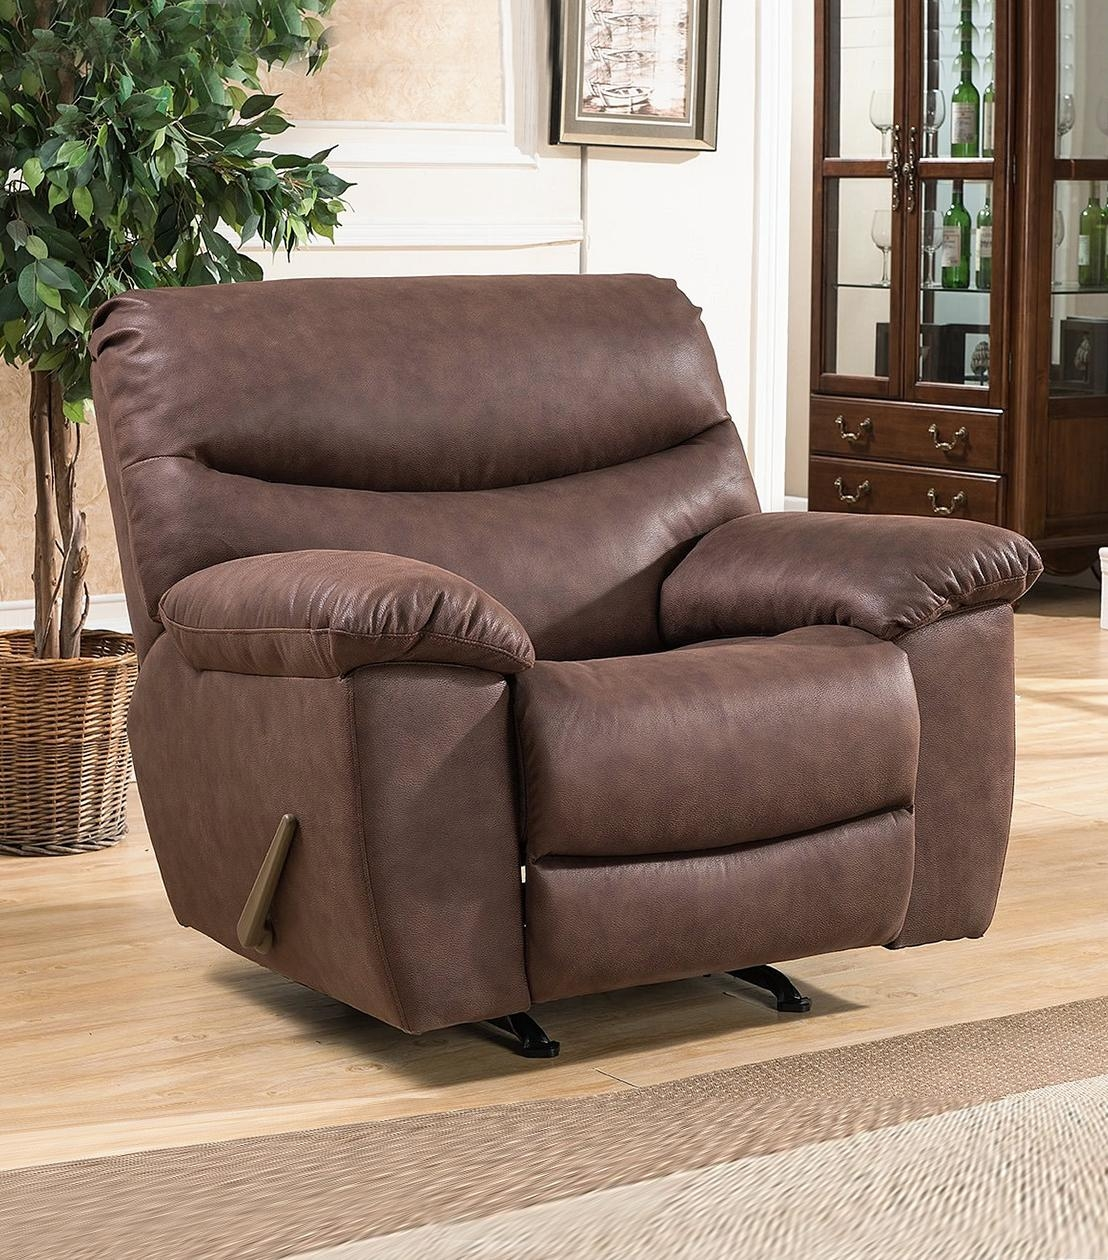 Recliners : Tyler Charging Station Recliner For Abbyson Recliners (View 20 of 20)